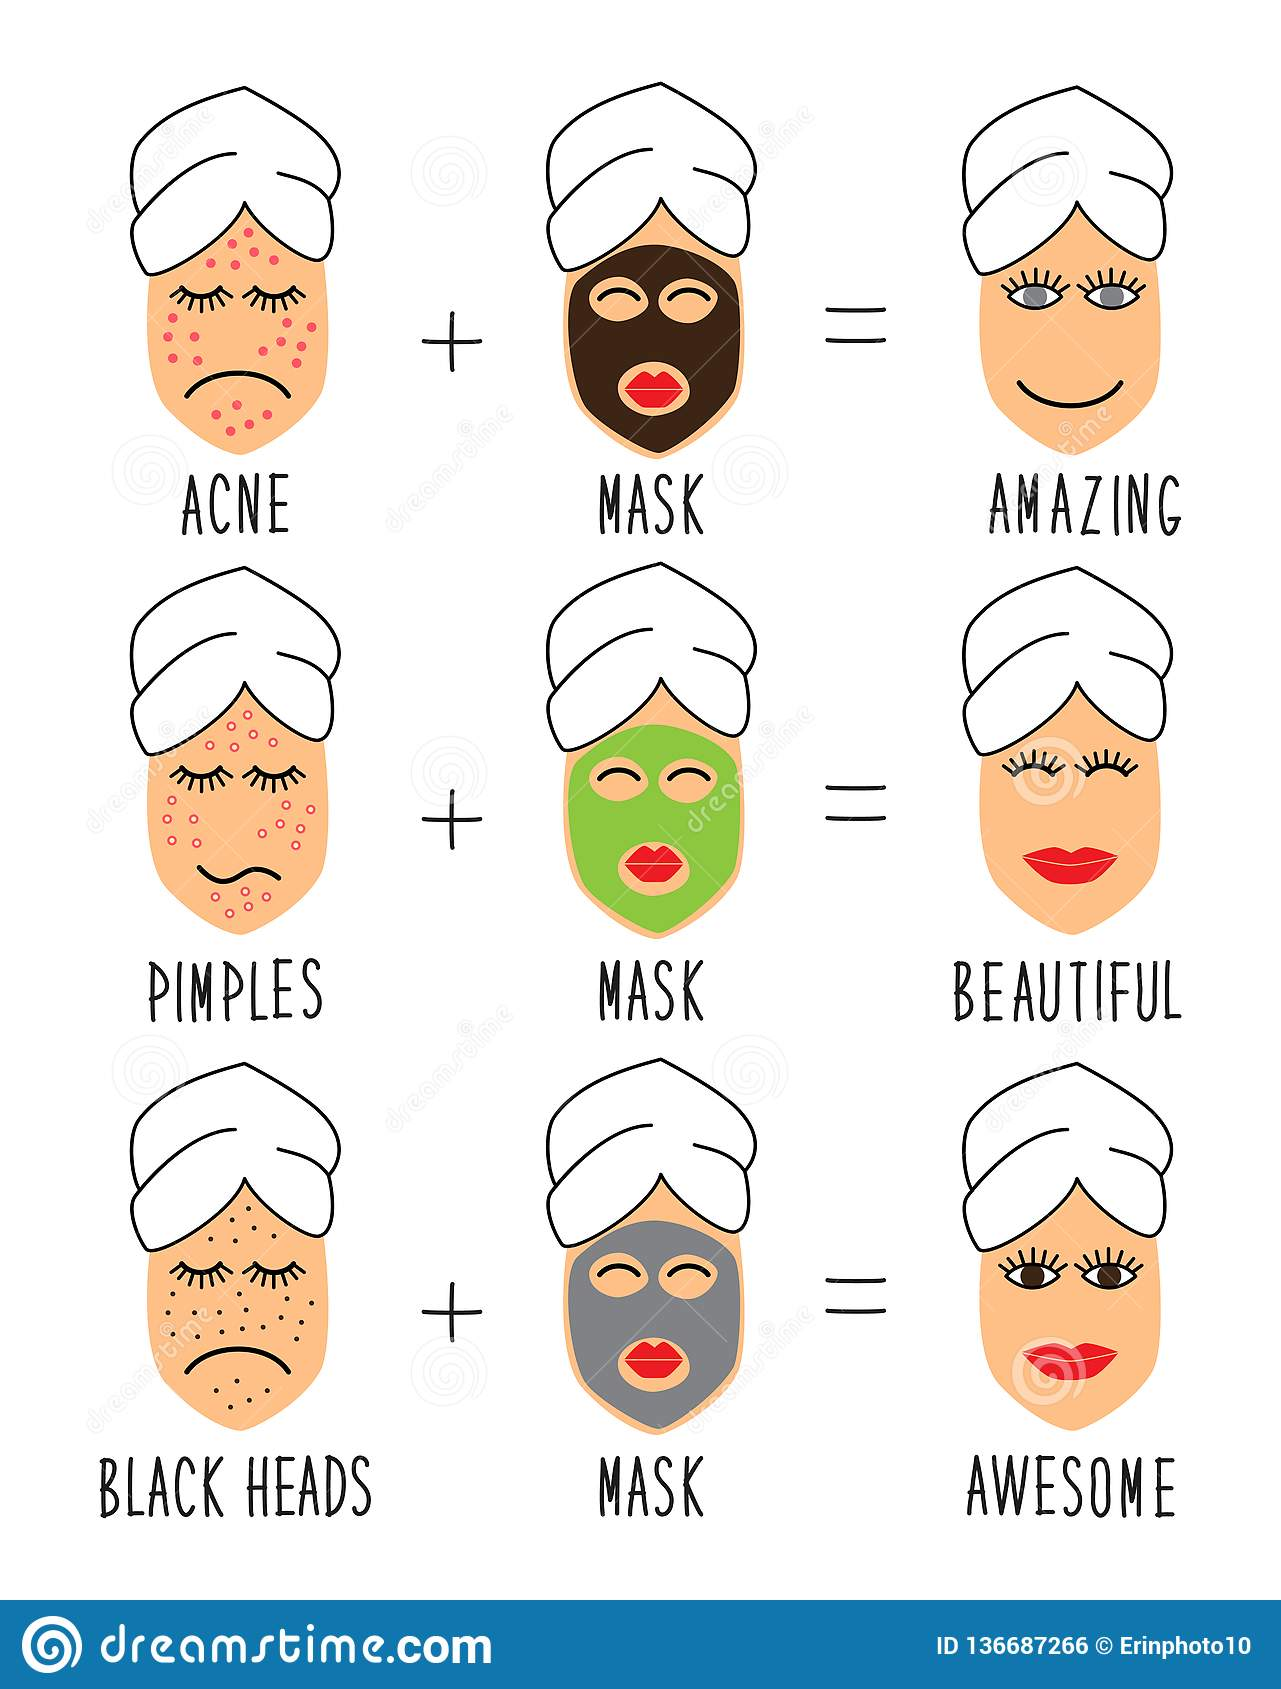 Cute And Simple Skincare Tips For Acne, Pimples, Black Heads